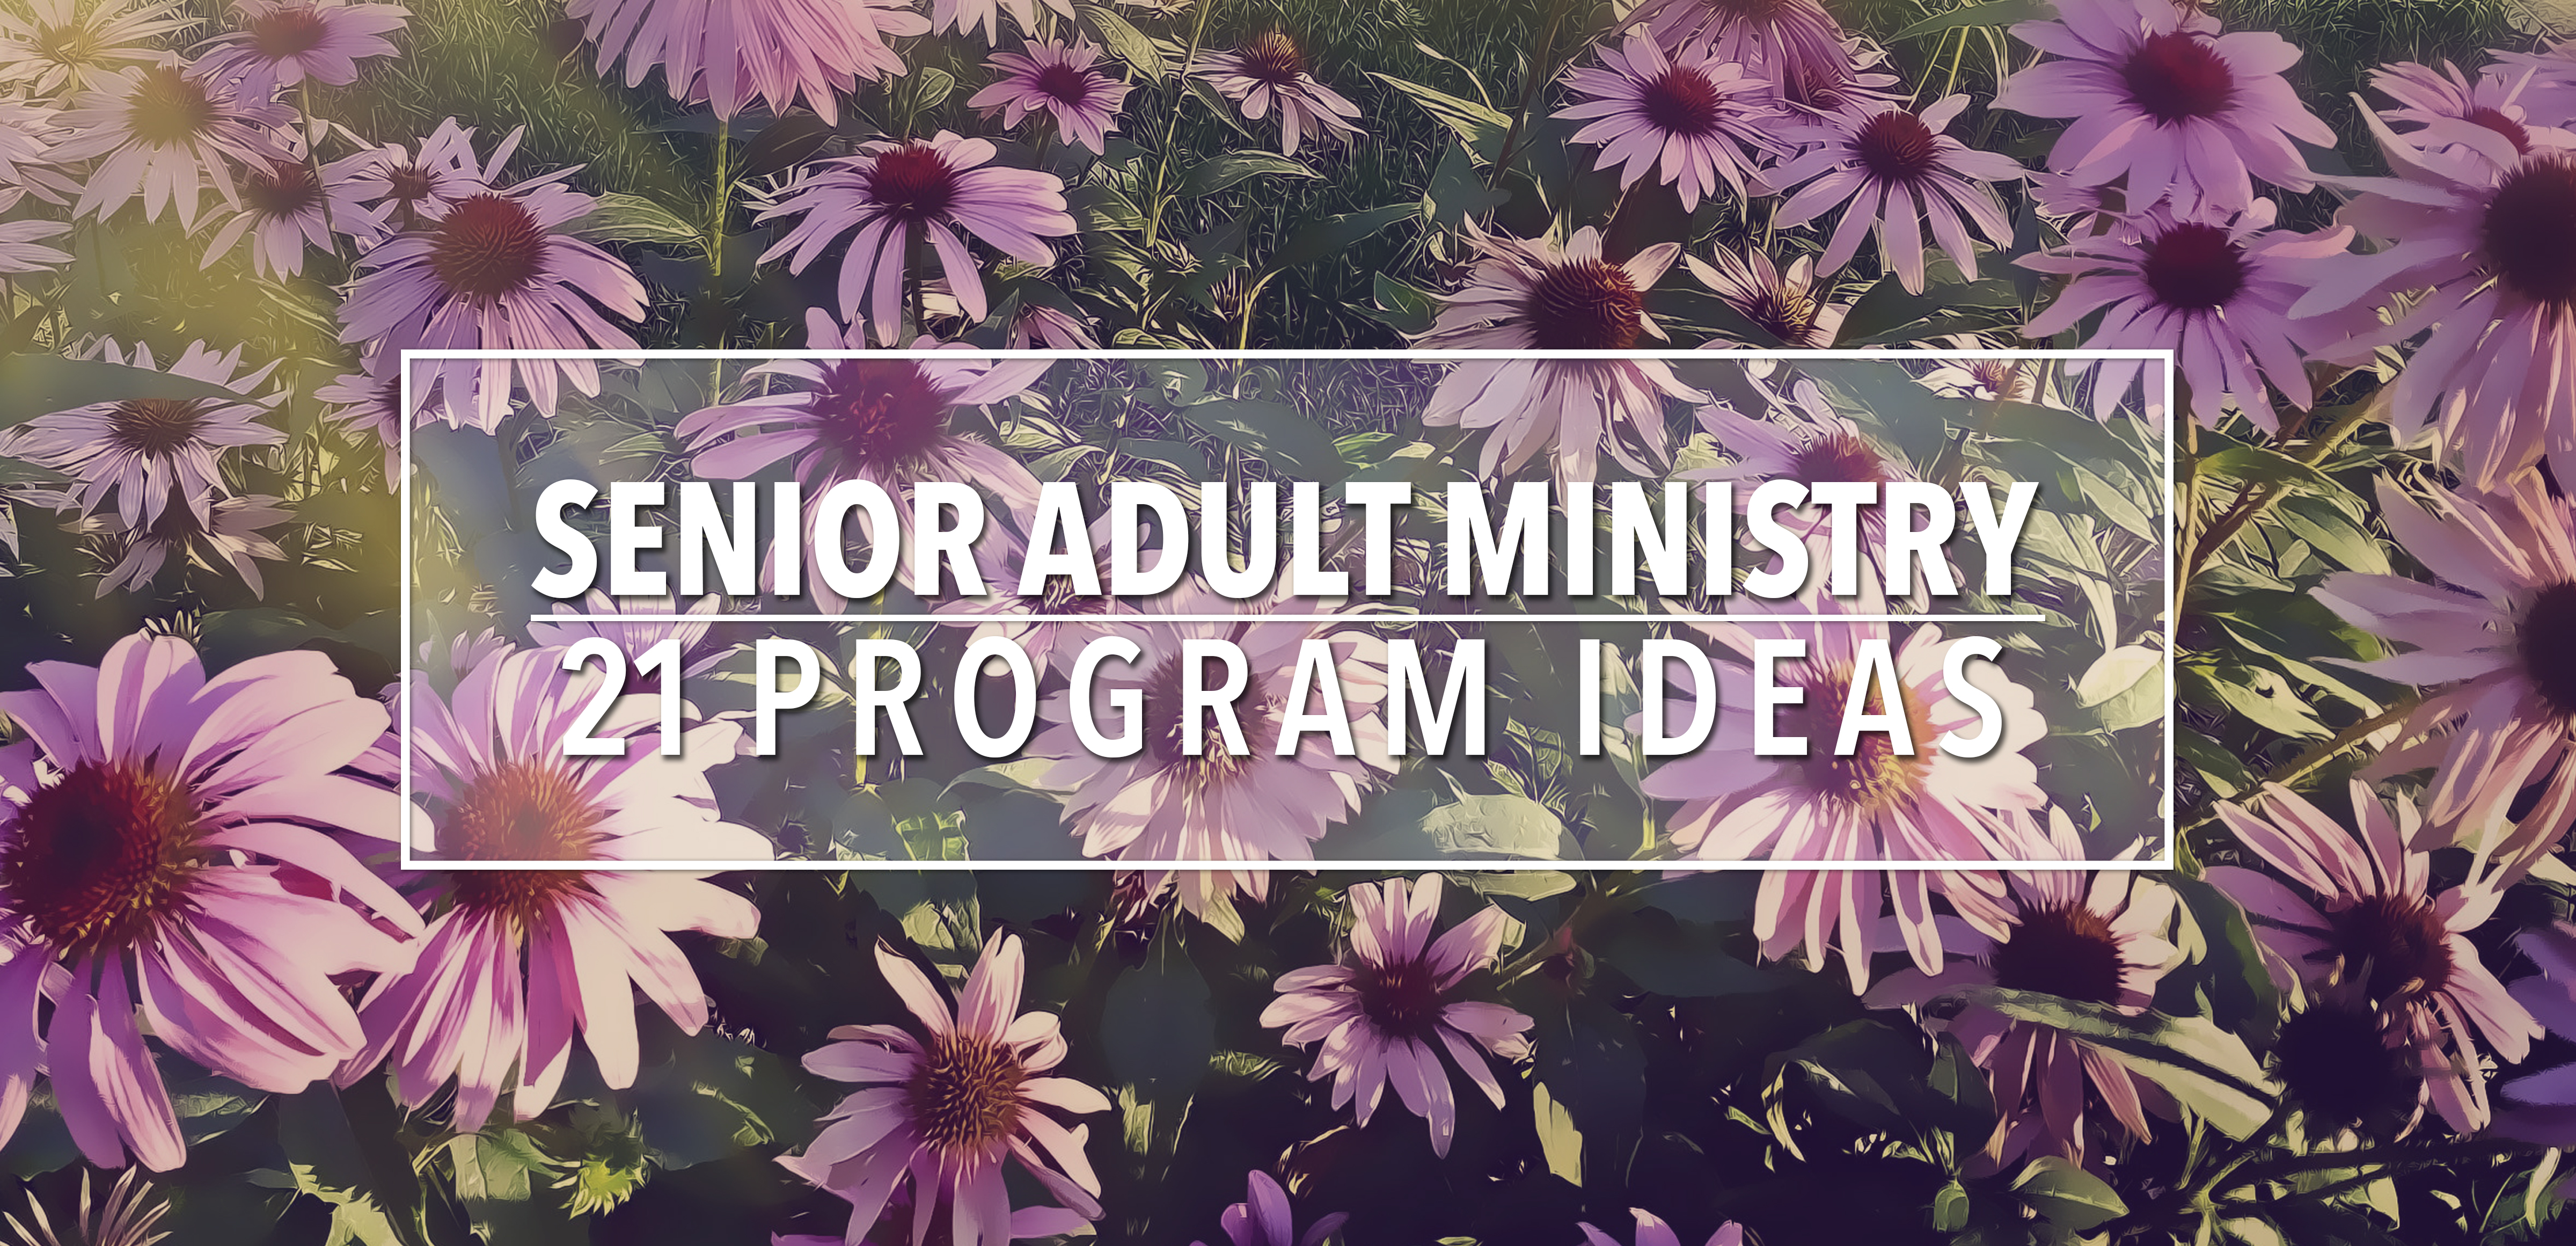 Senior Adult Ministry Program Ideas